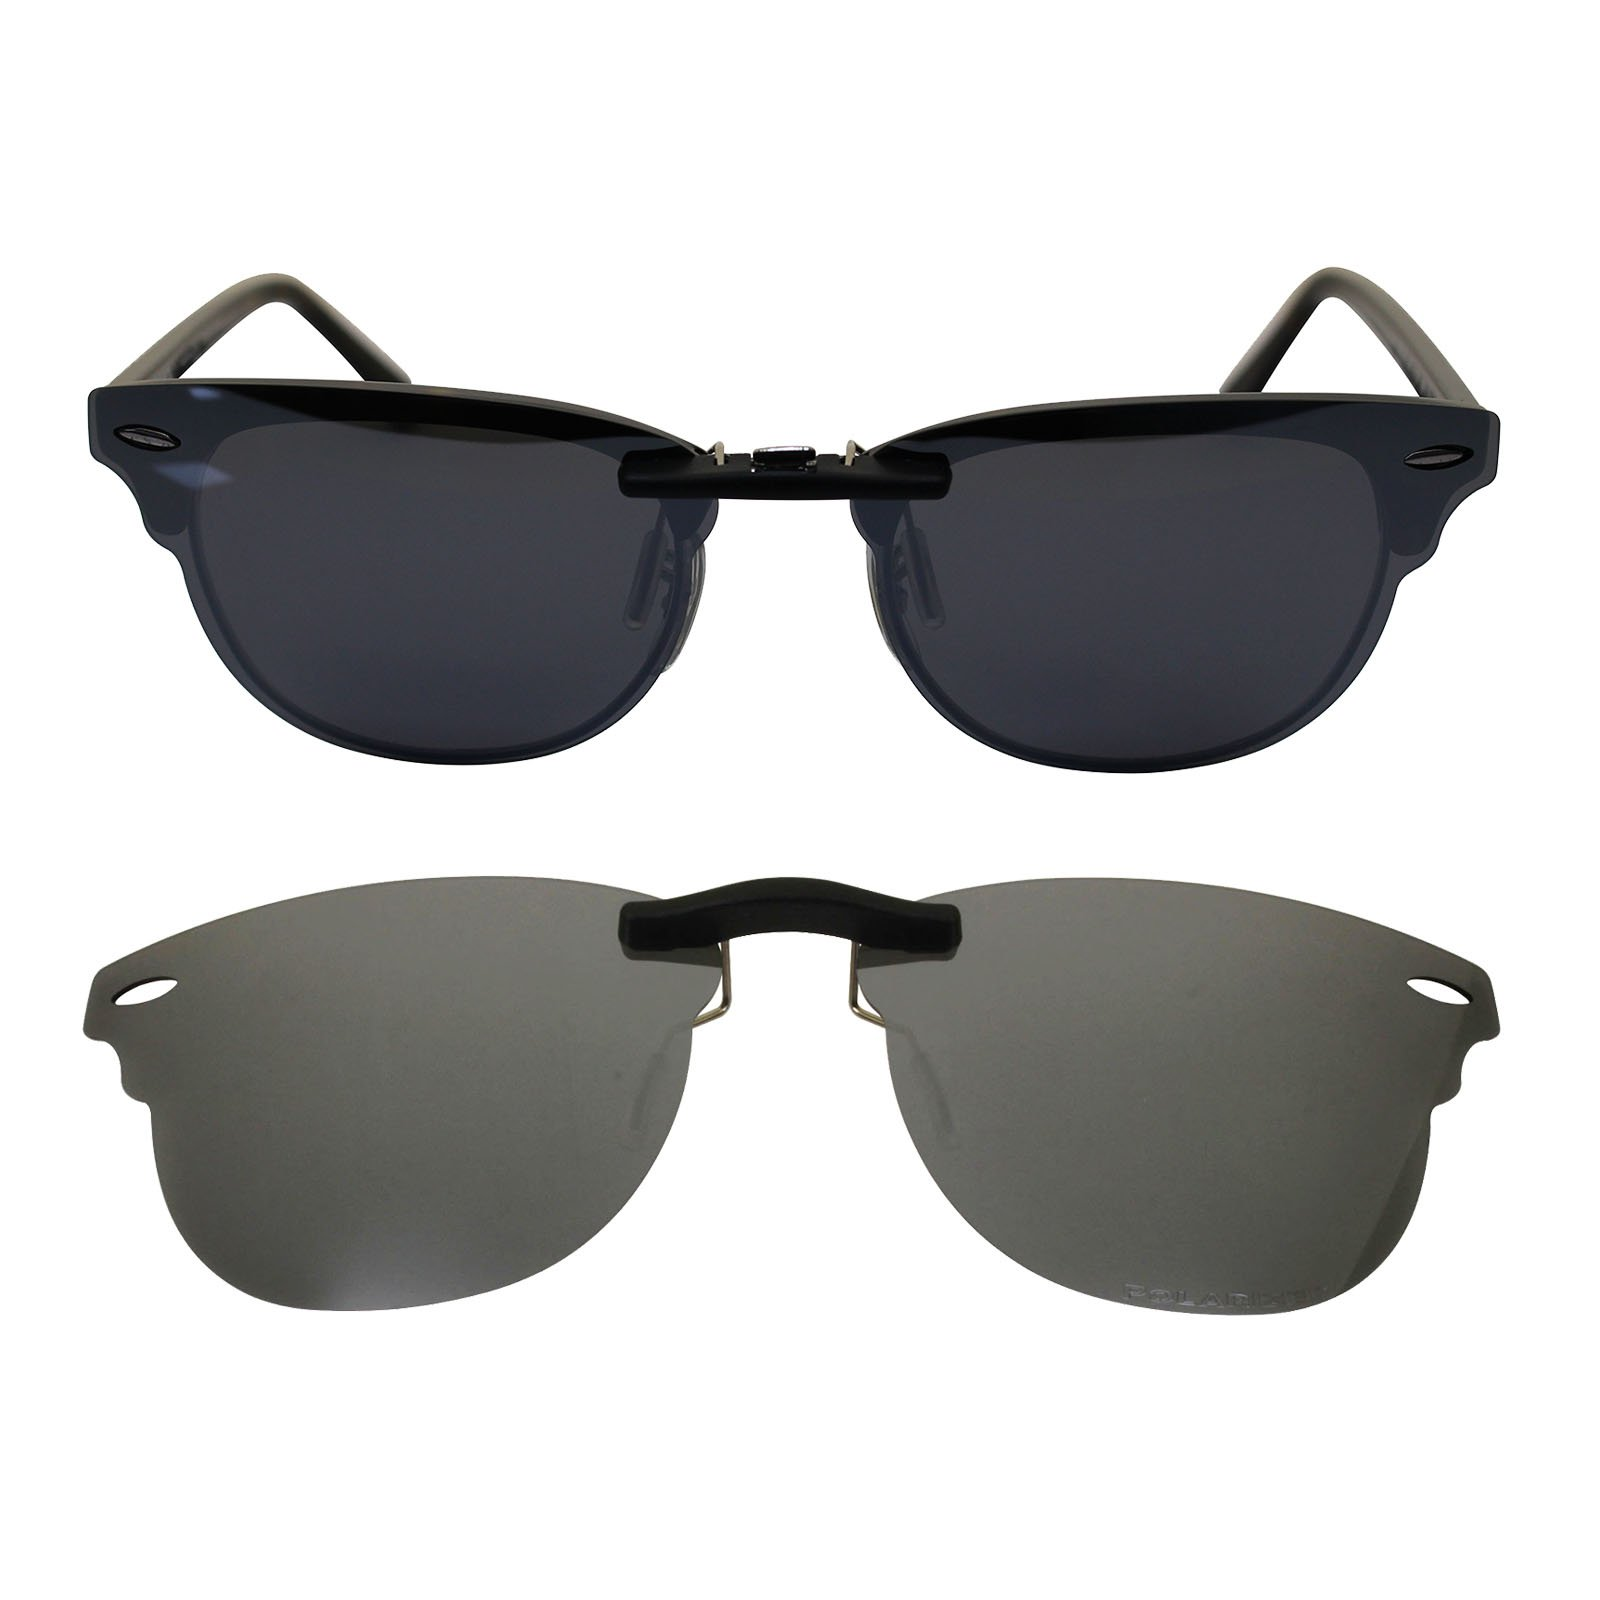 f19a99d9fca Galleon - Ogeee Custom Polarized Clip On Sunglasses For Ray-Ban Clubmaster  RB5154 (RX5154) 51-21-145 Silver